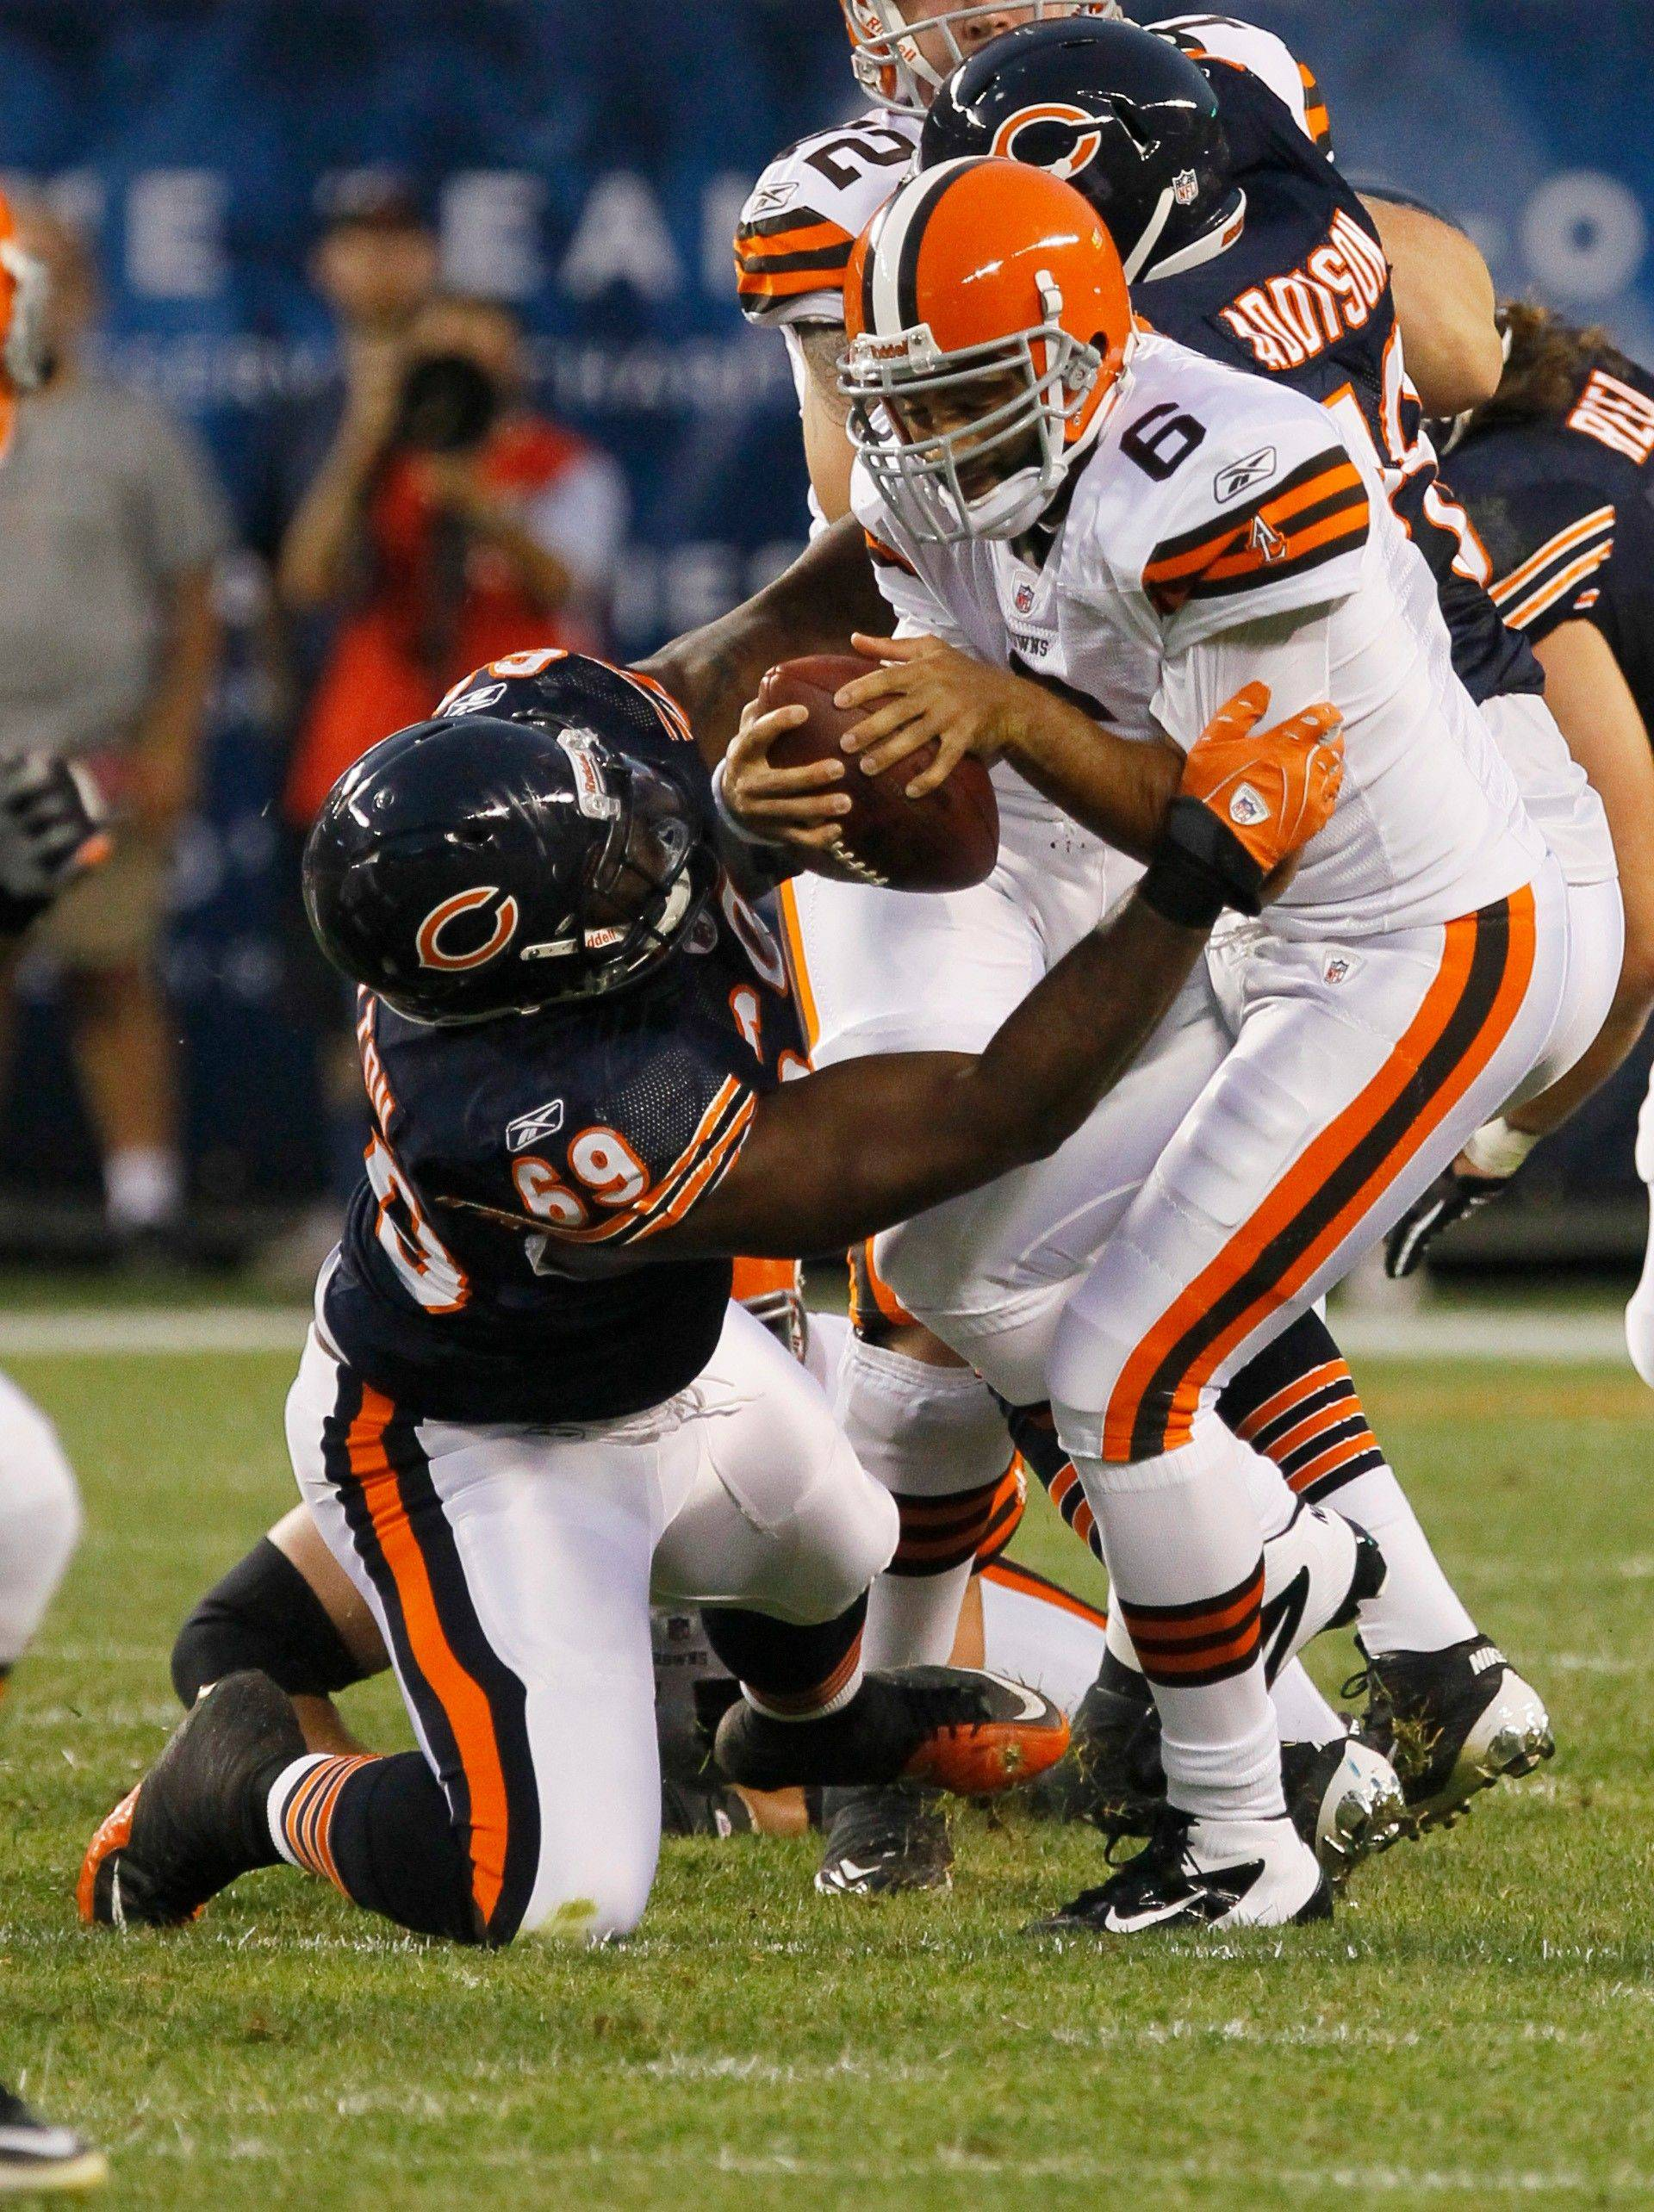 Cleveland Browns quarterback Seneca Wallace is sacked by Chicago Bears guard Ricky Henry in the first half.